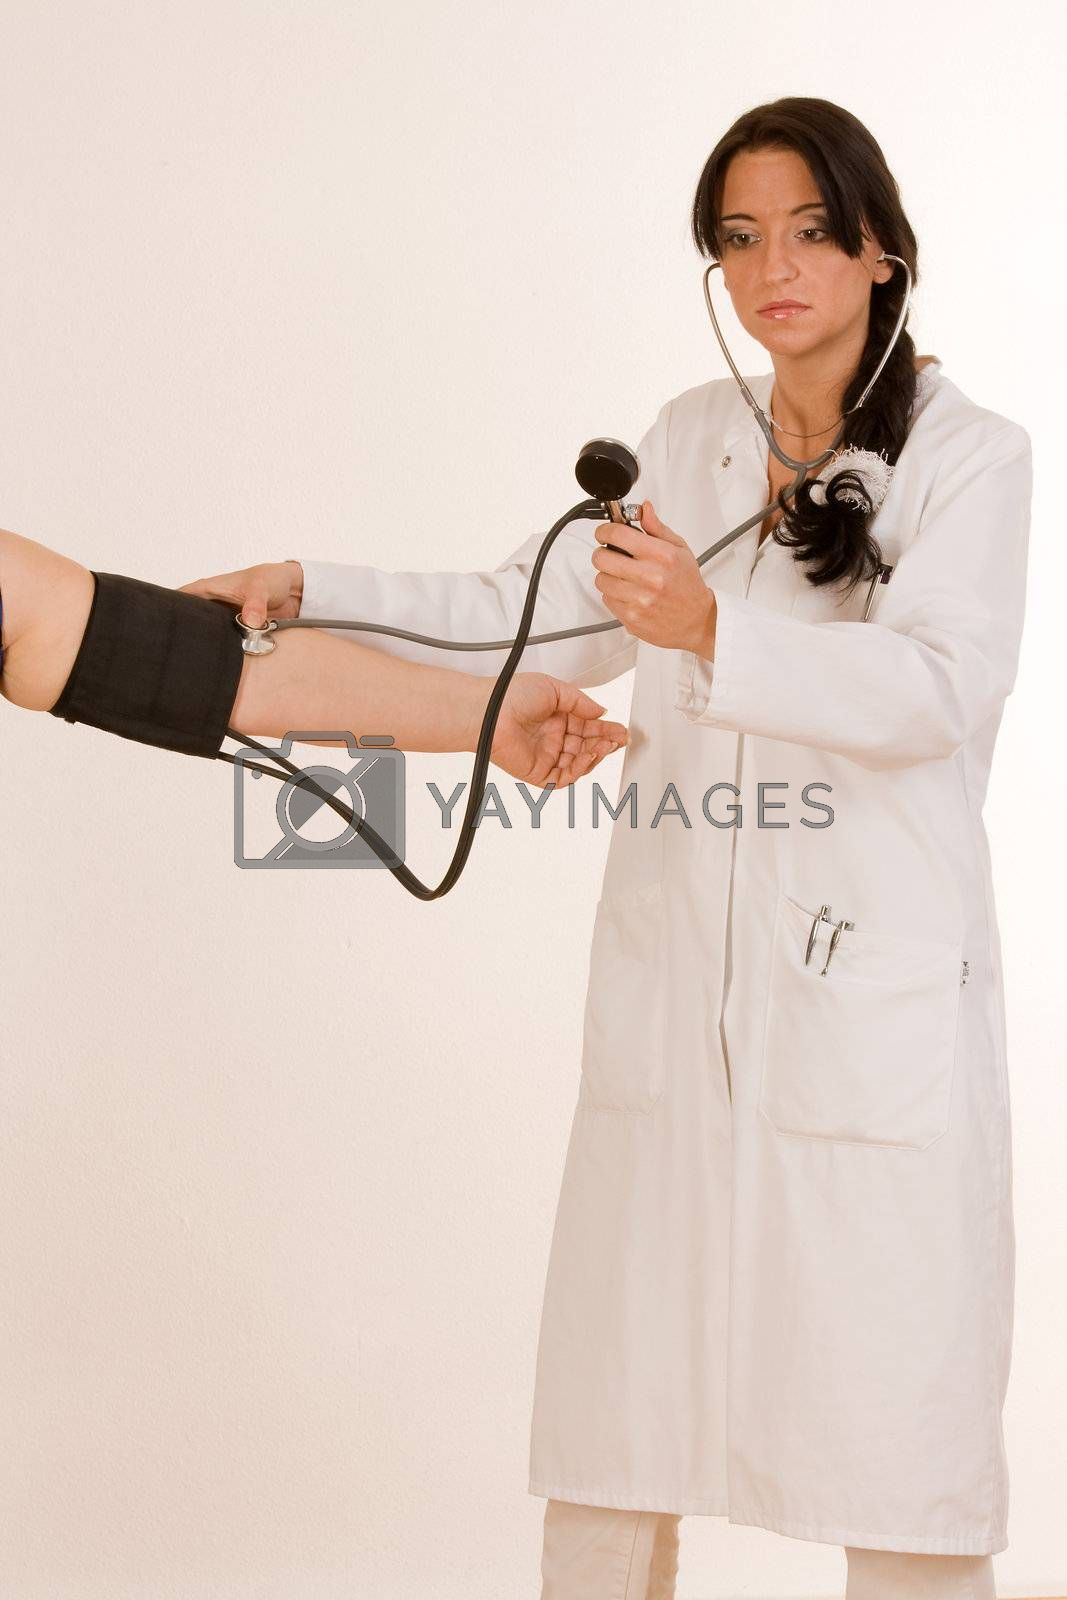 Physician measures the blood pressure at the arm of a patient